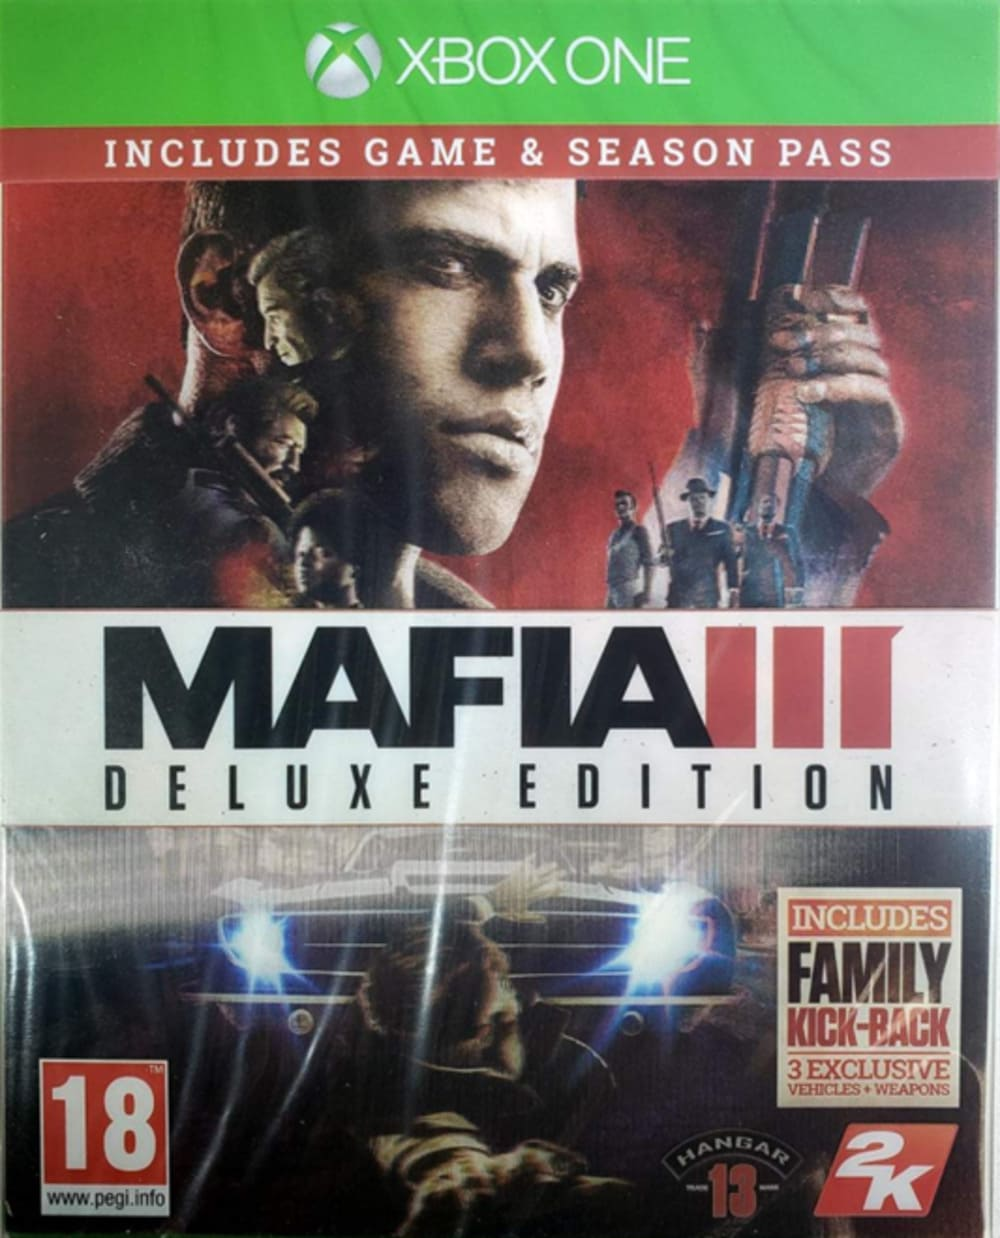 Mafia III (3) Deluxe Edition - Xbox One